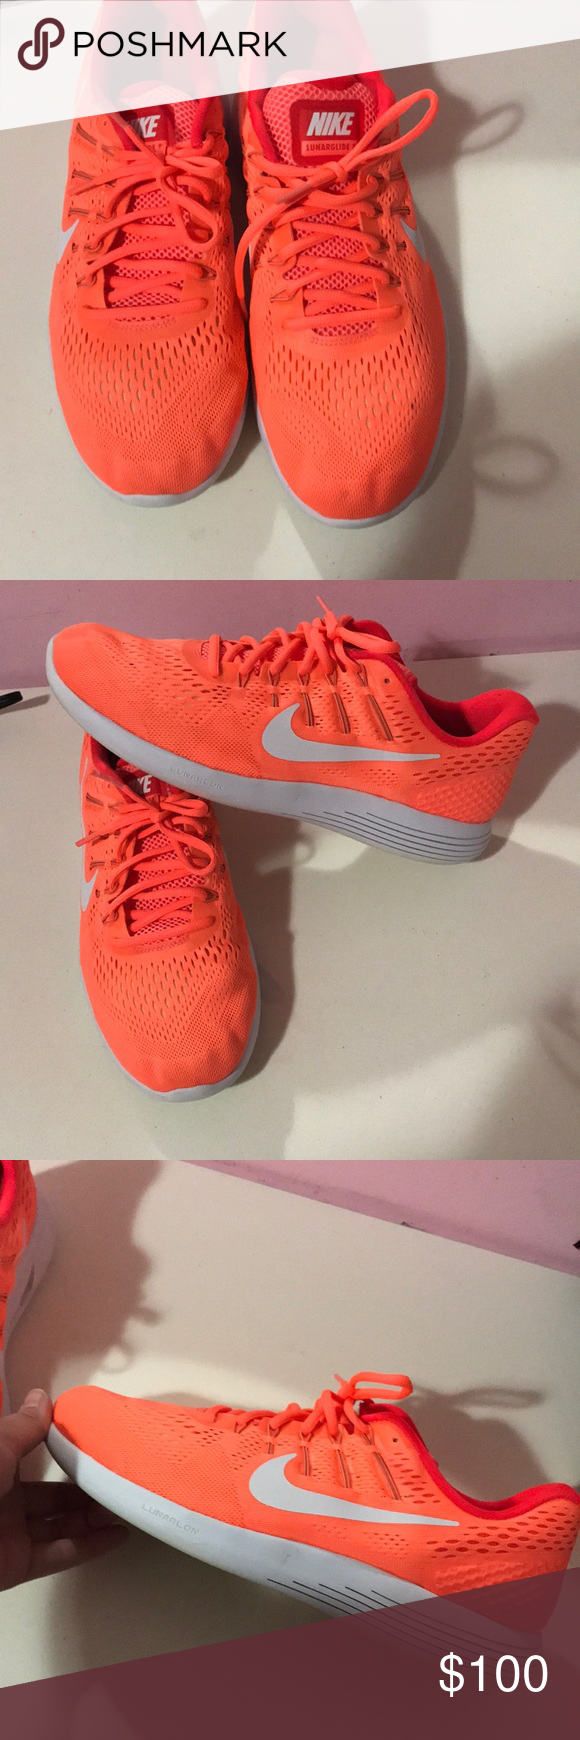 check out 323fc 78d21 Neon orange nike lunar glide 6 shoes Perfectly clean nike lunar glide 6  women s size 11. From a smoke free home and in perfect condition!!